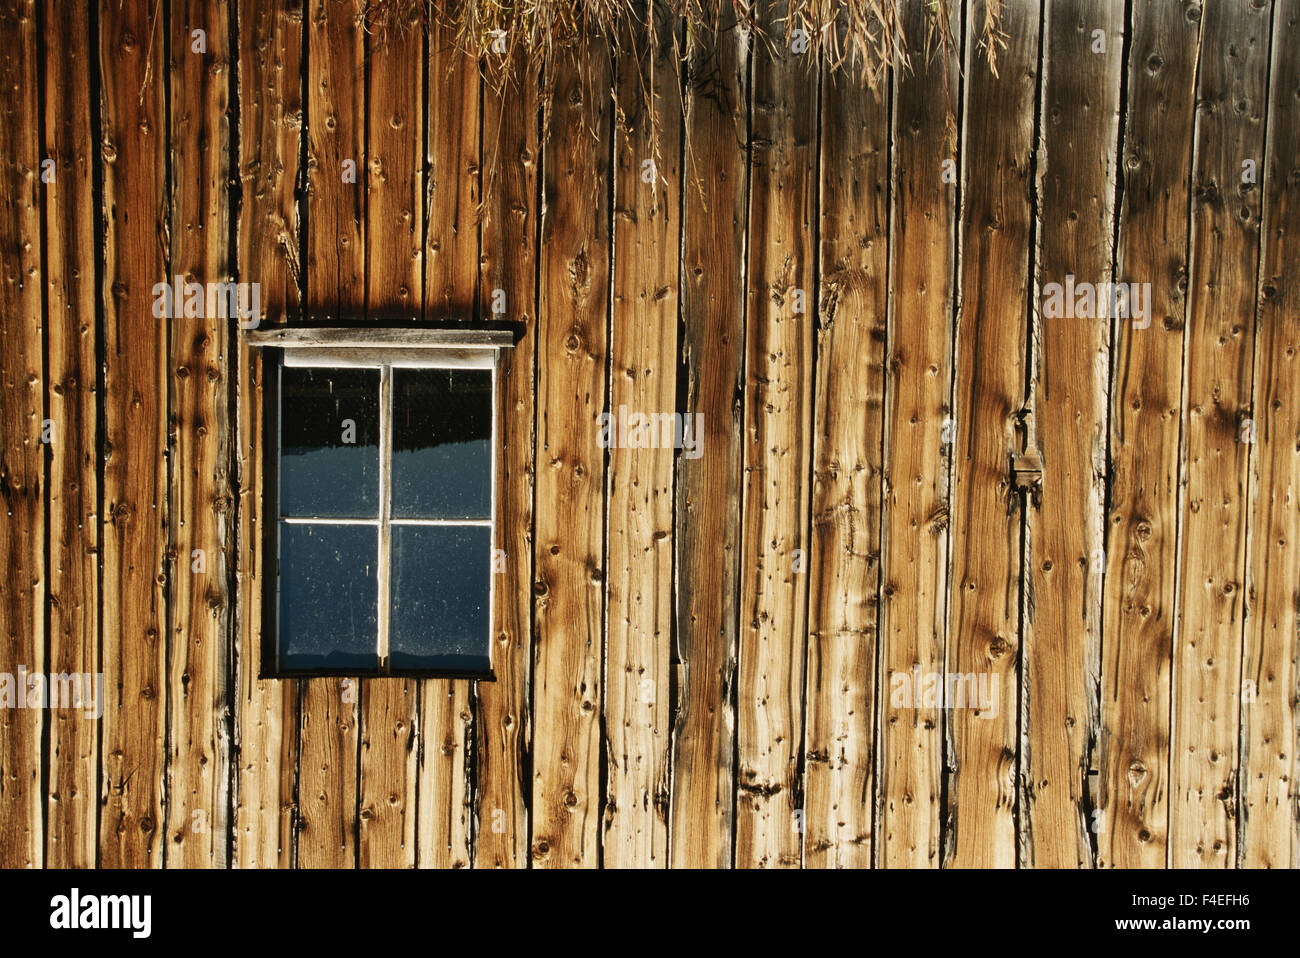 USA, Colorado, Fairplay, South Park City Museum Wall Detail. (Large format sizes available) - Stock Image